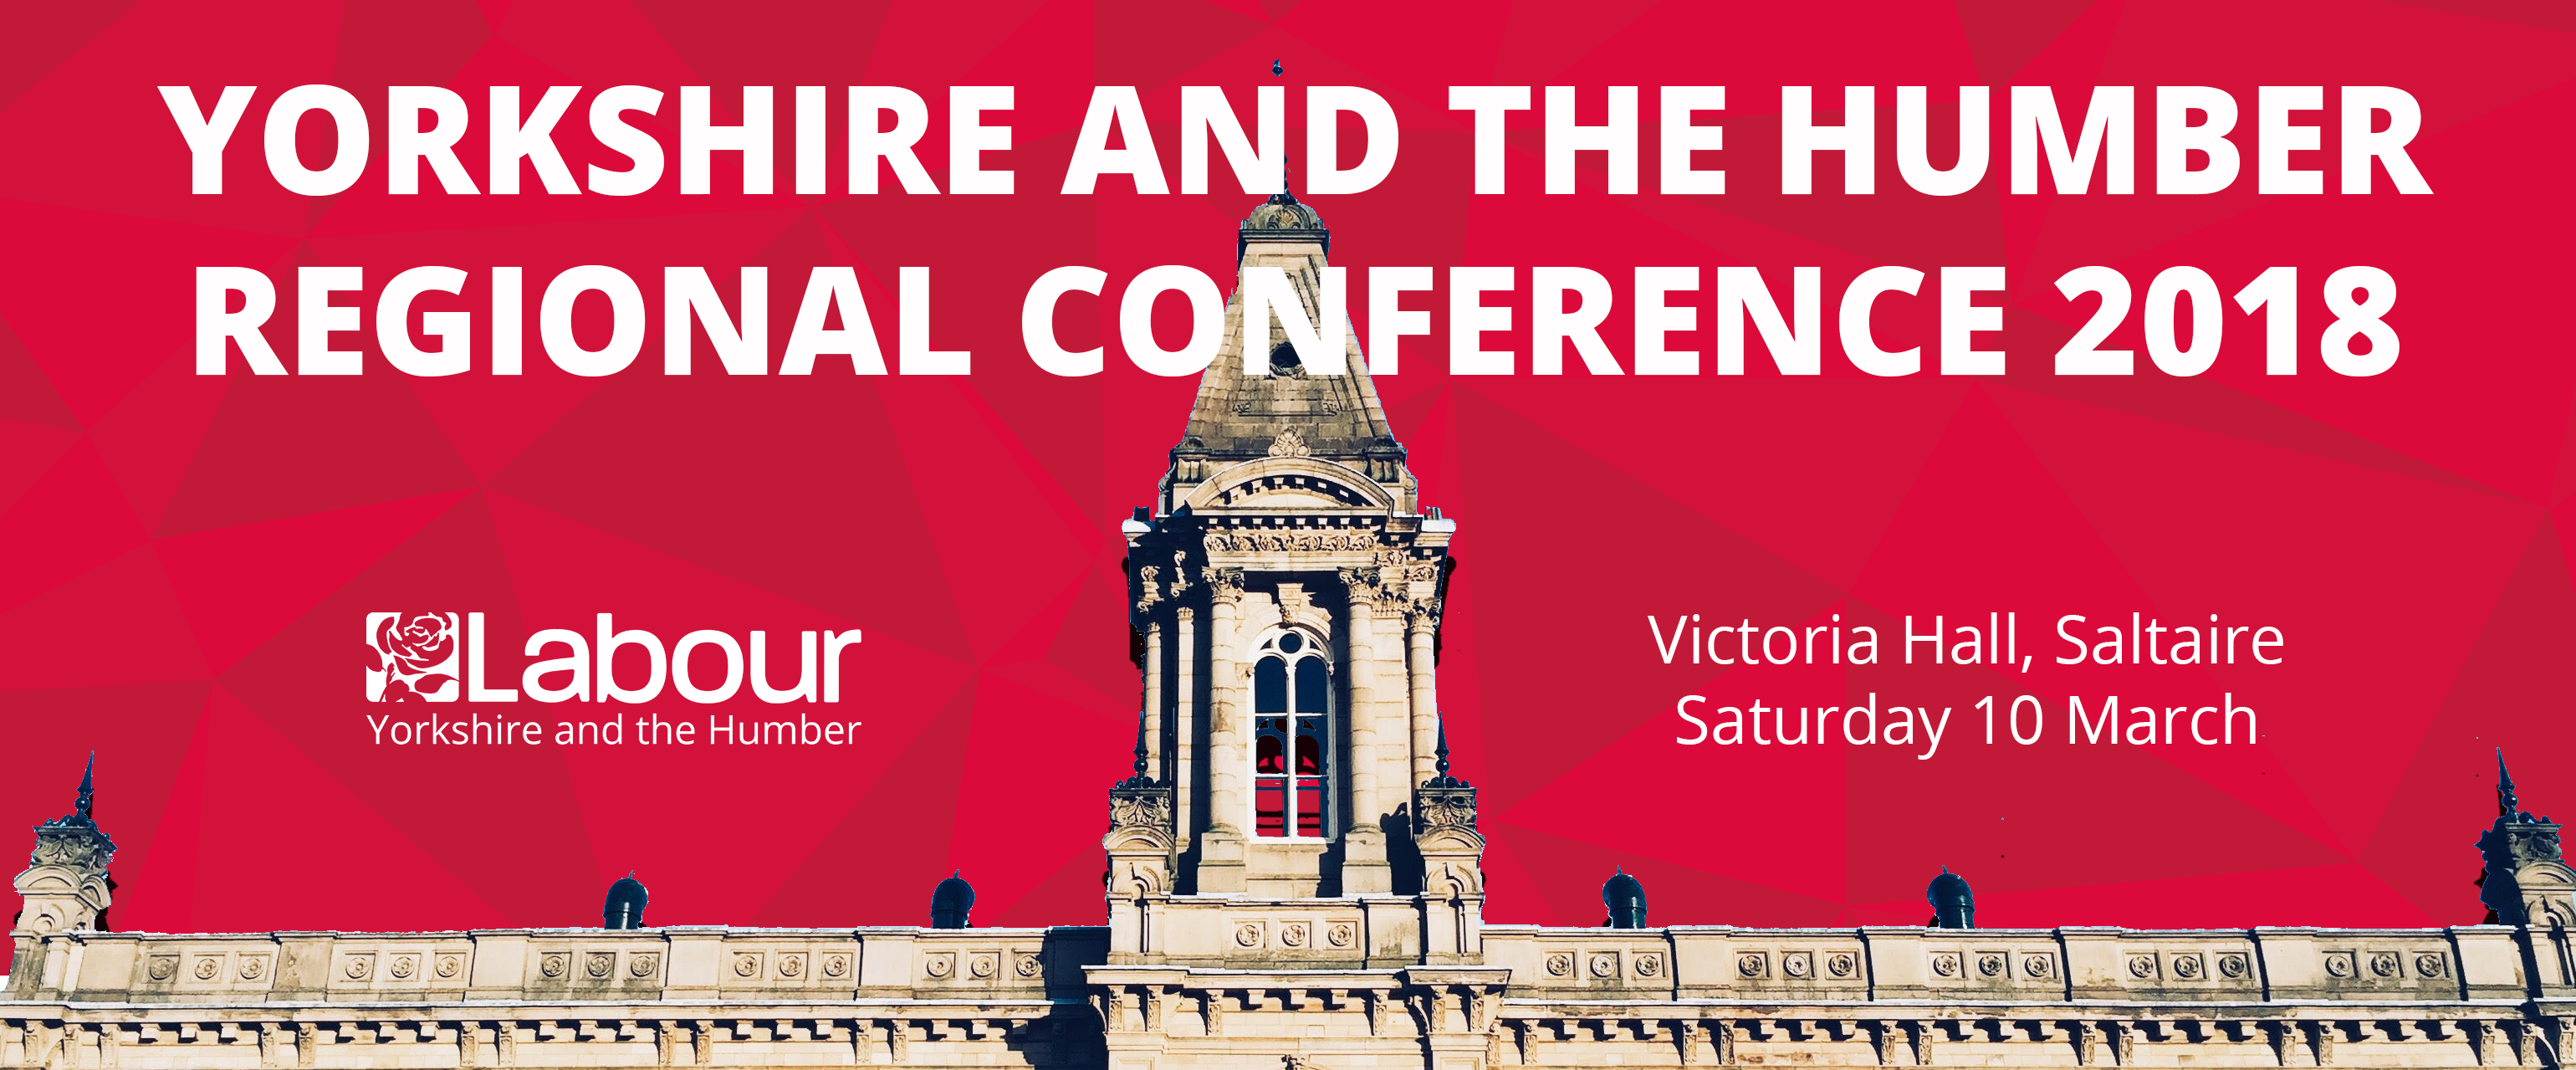 Regional_Conference_2018_Header_RED.png